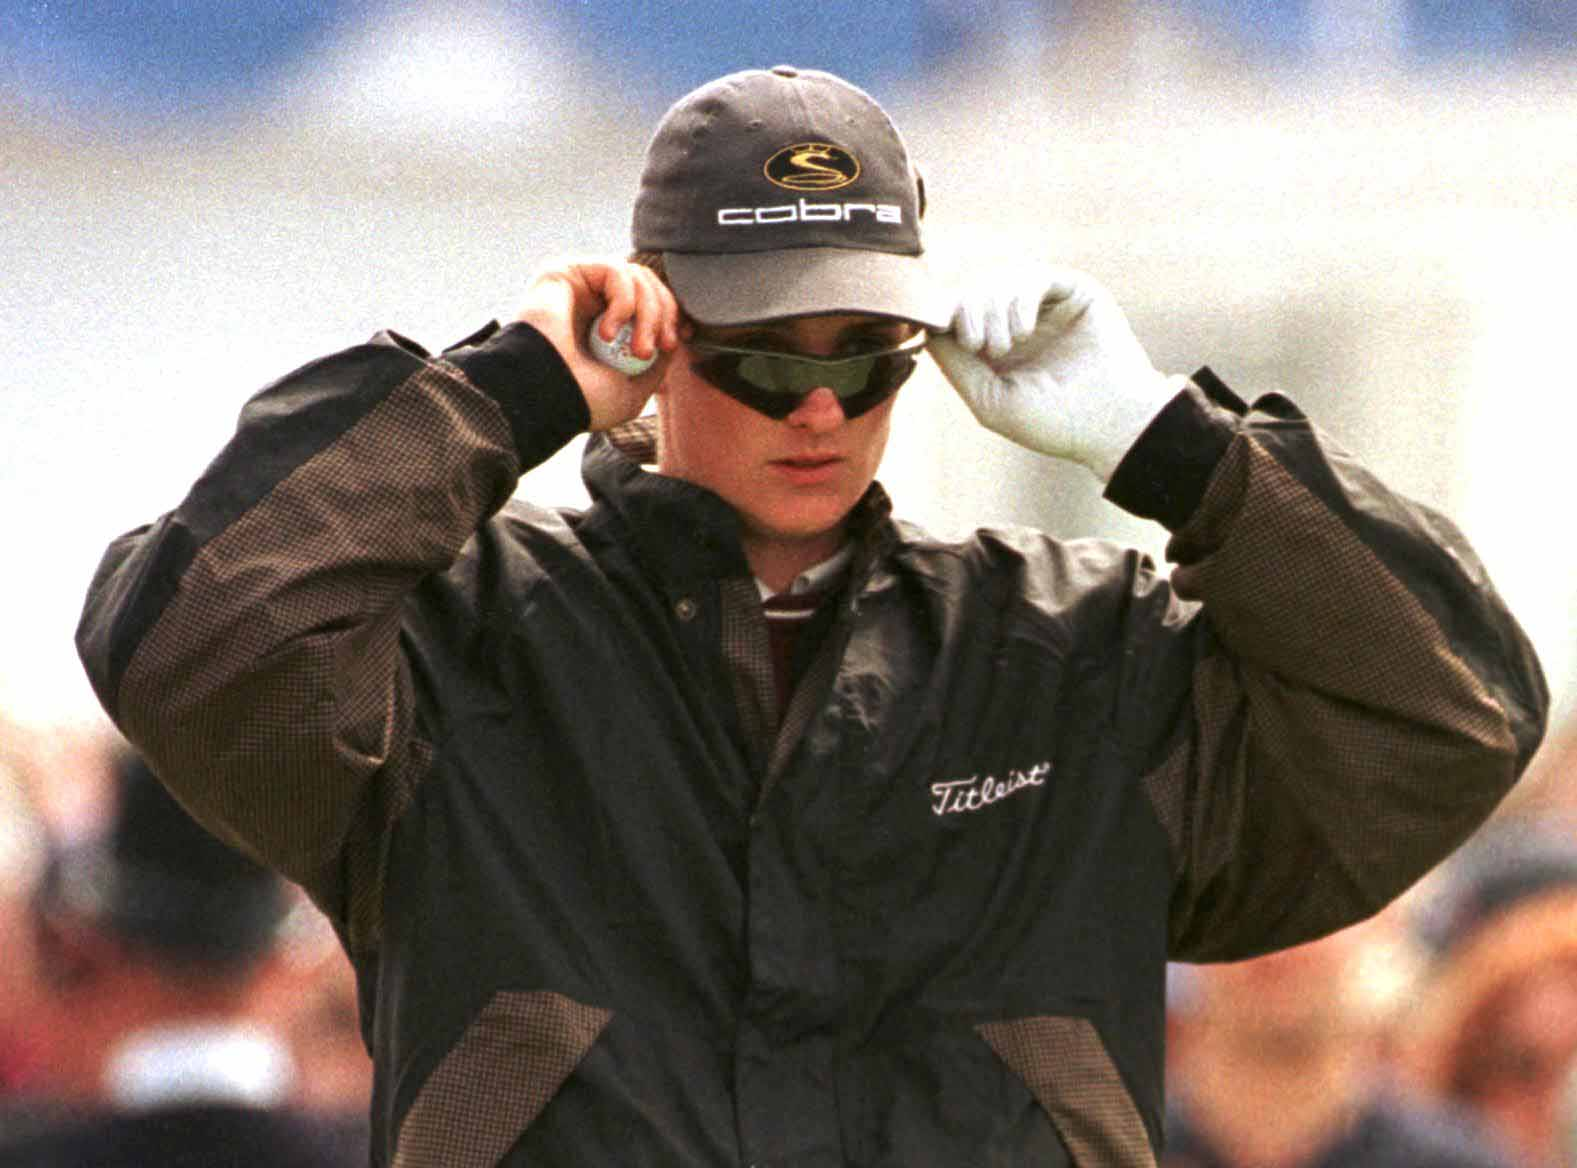 Justin Rose, then a callow 17-year-old amateur, burst to worldwide prominence at 1998 Open Championship at Royal Birkdale